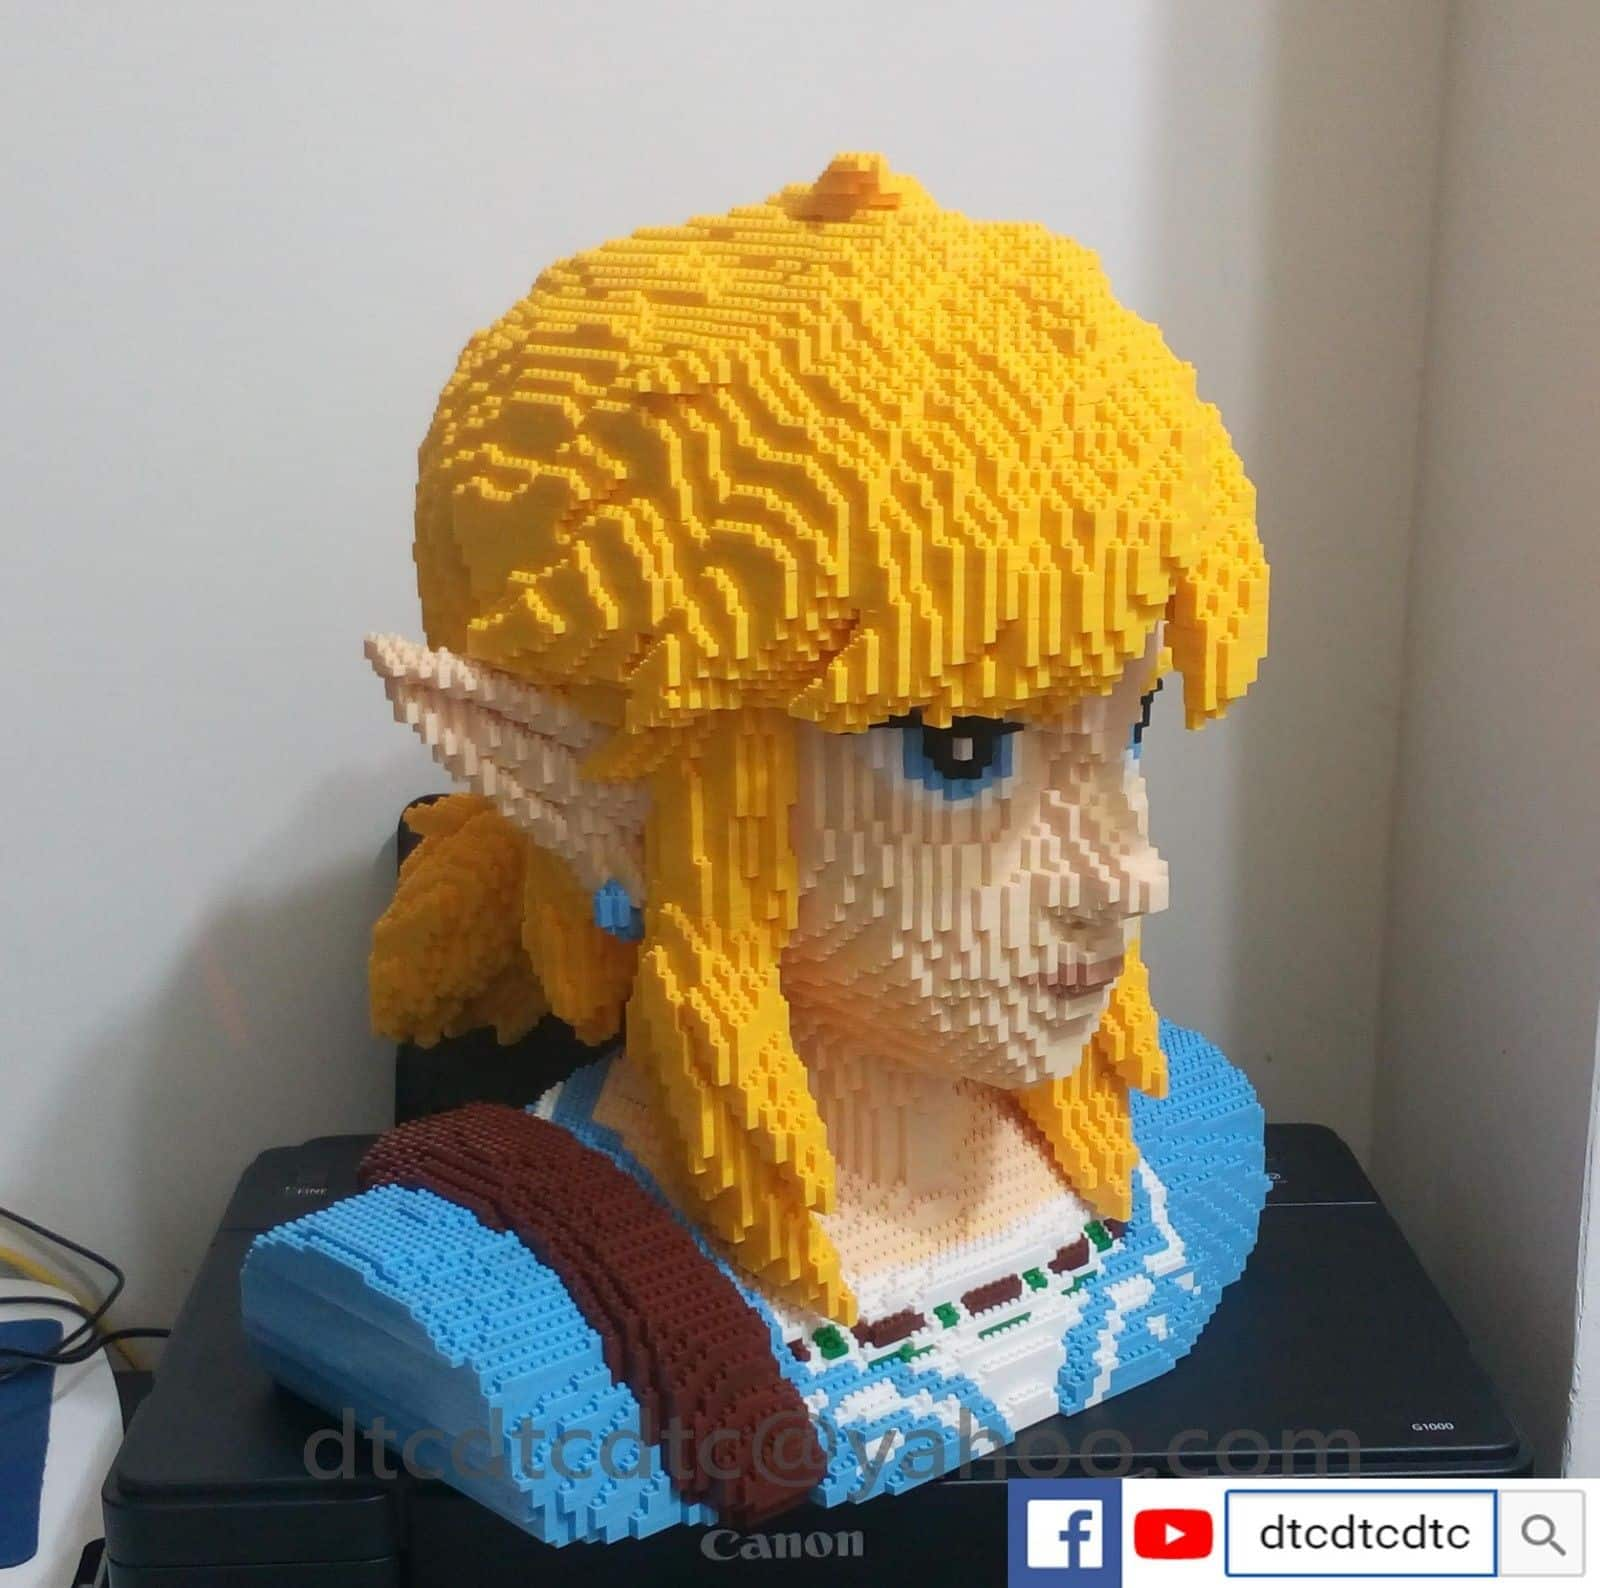 Legend of Zelda 8-bit Statue from Breath of the Wind done in LEGO Nintendo Wii Switch 3